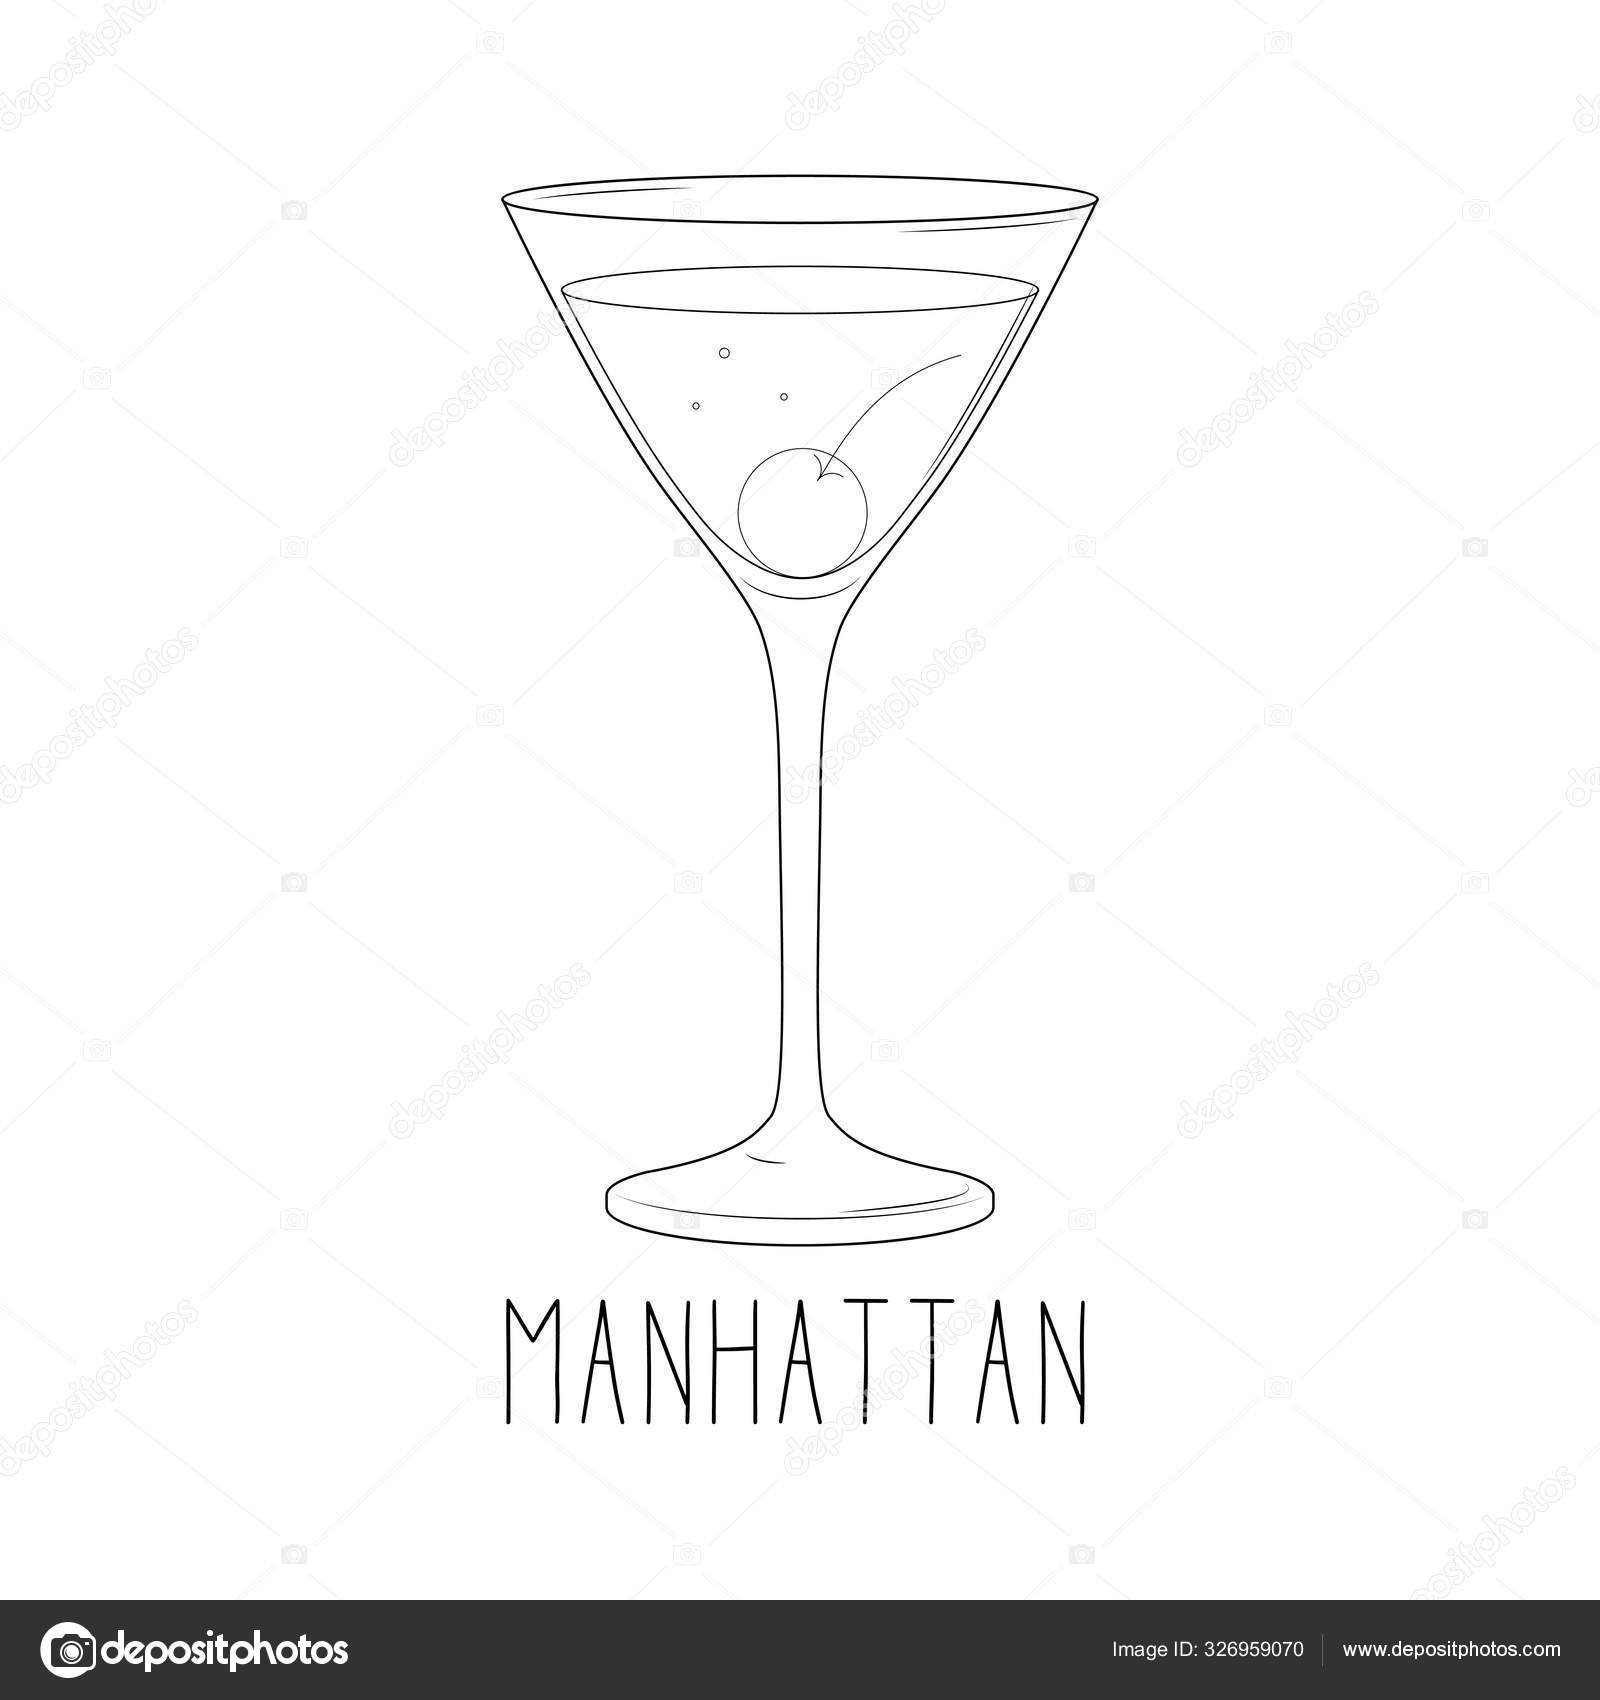 Manhattan Cocktail Sketch Vector Images Royalty Free Manhattan Cocktail Sketch Vectors Depositphotos